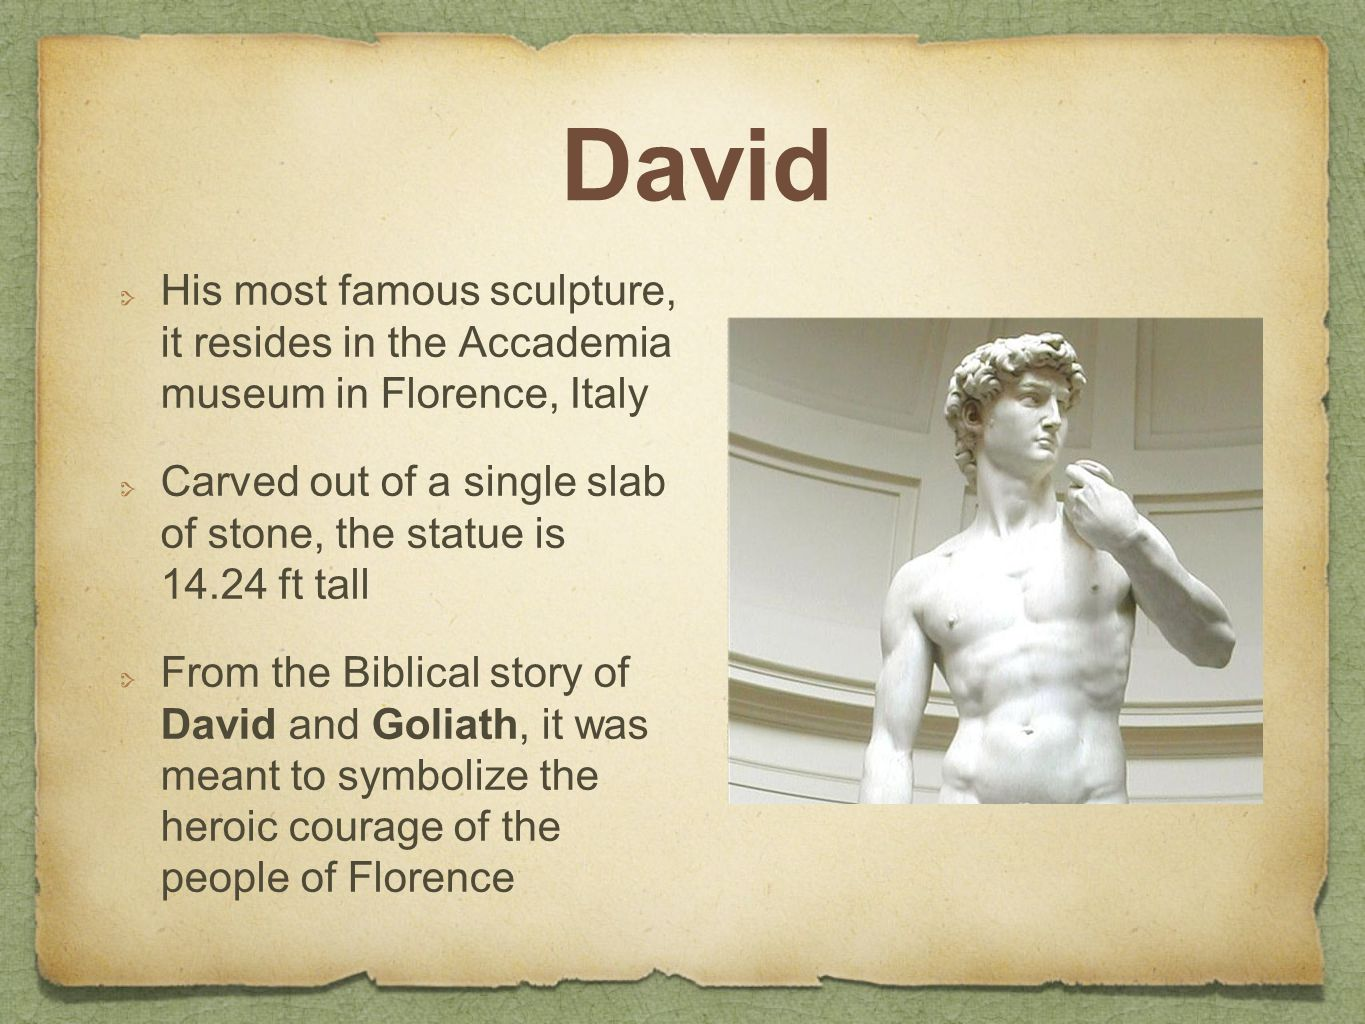 David His most famous sculpture, it resides in the Accademia museum in Florence, Italy Carved out of a single slab of stone, the statue is 14.24 ft tall From the Biblical story of David and Goliath, it was meant to symbolize the heroic courage of the people of Florence